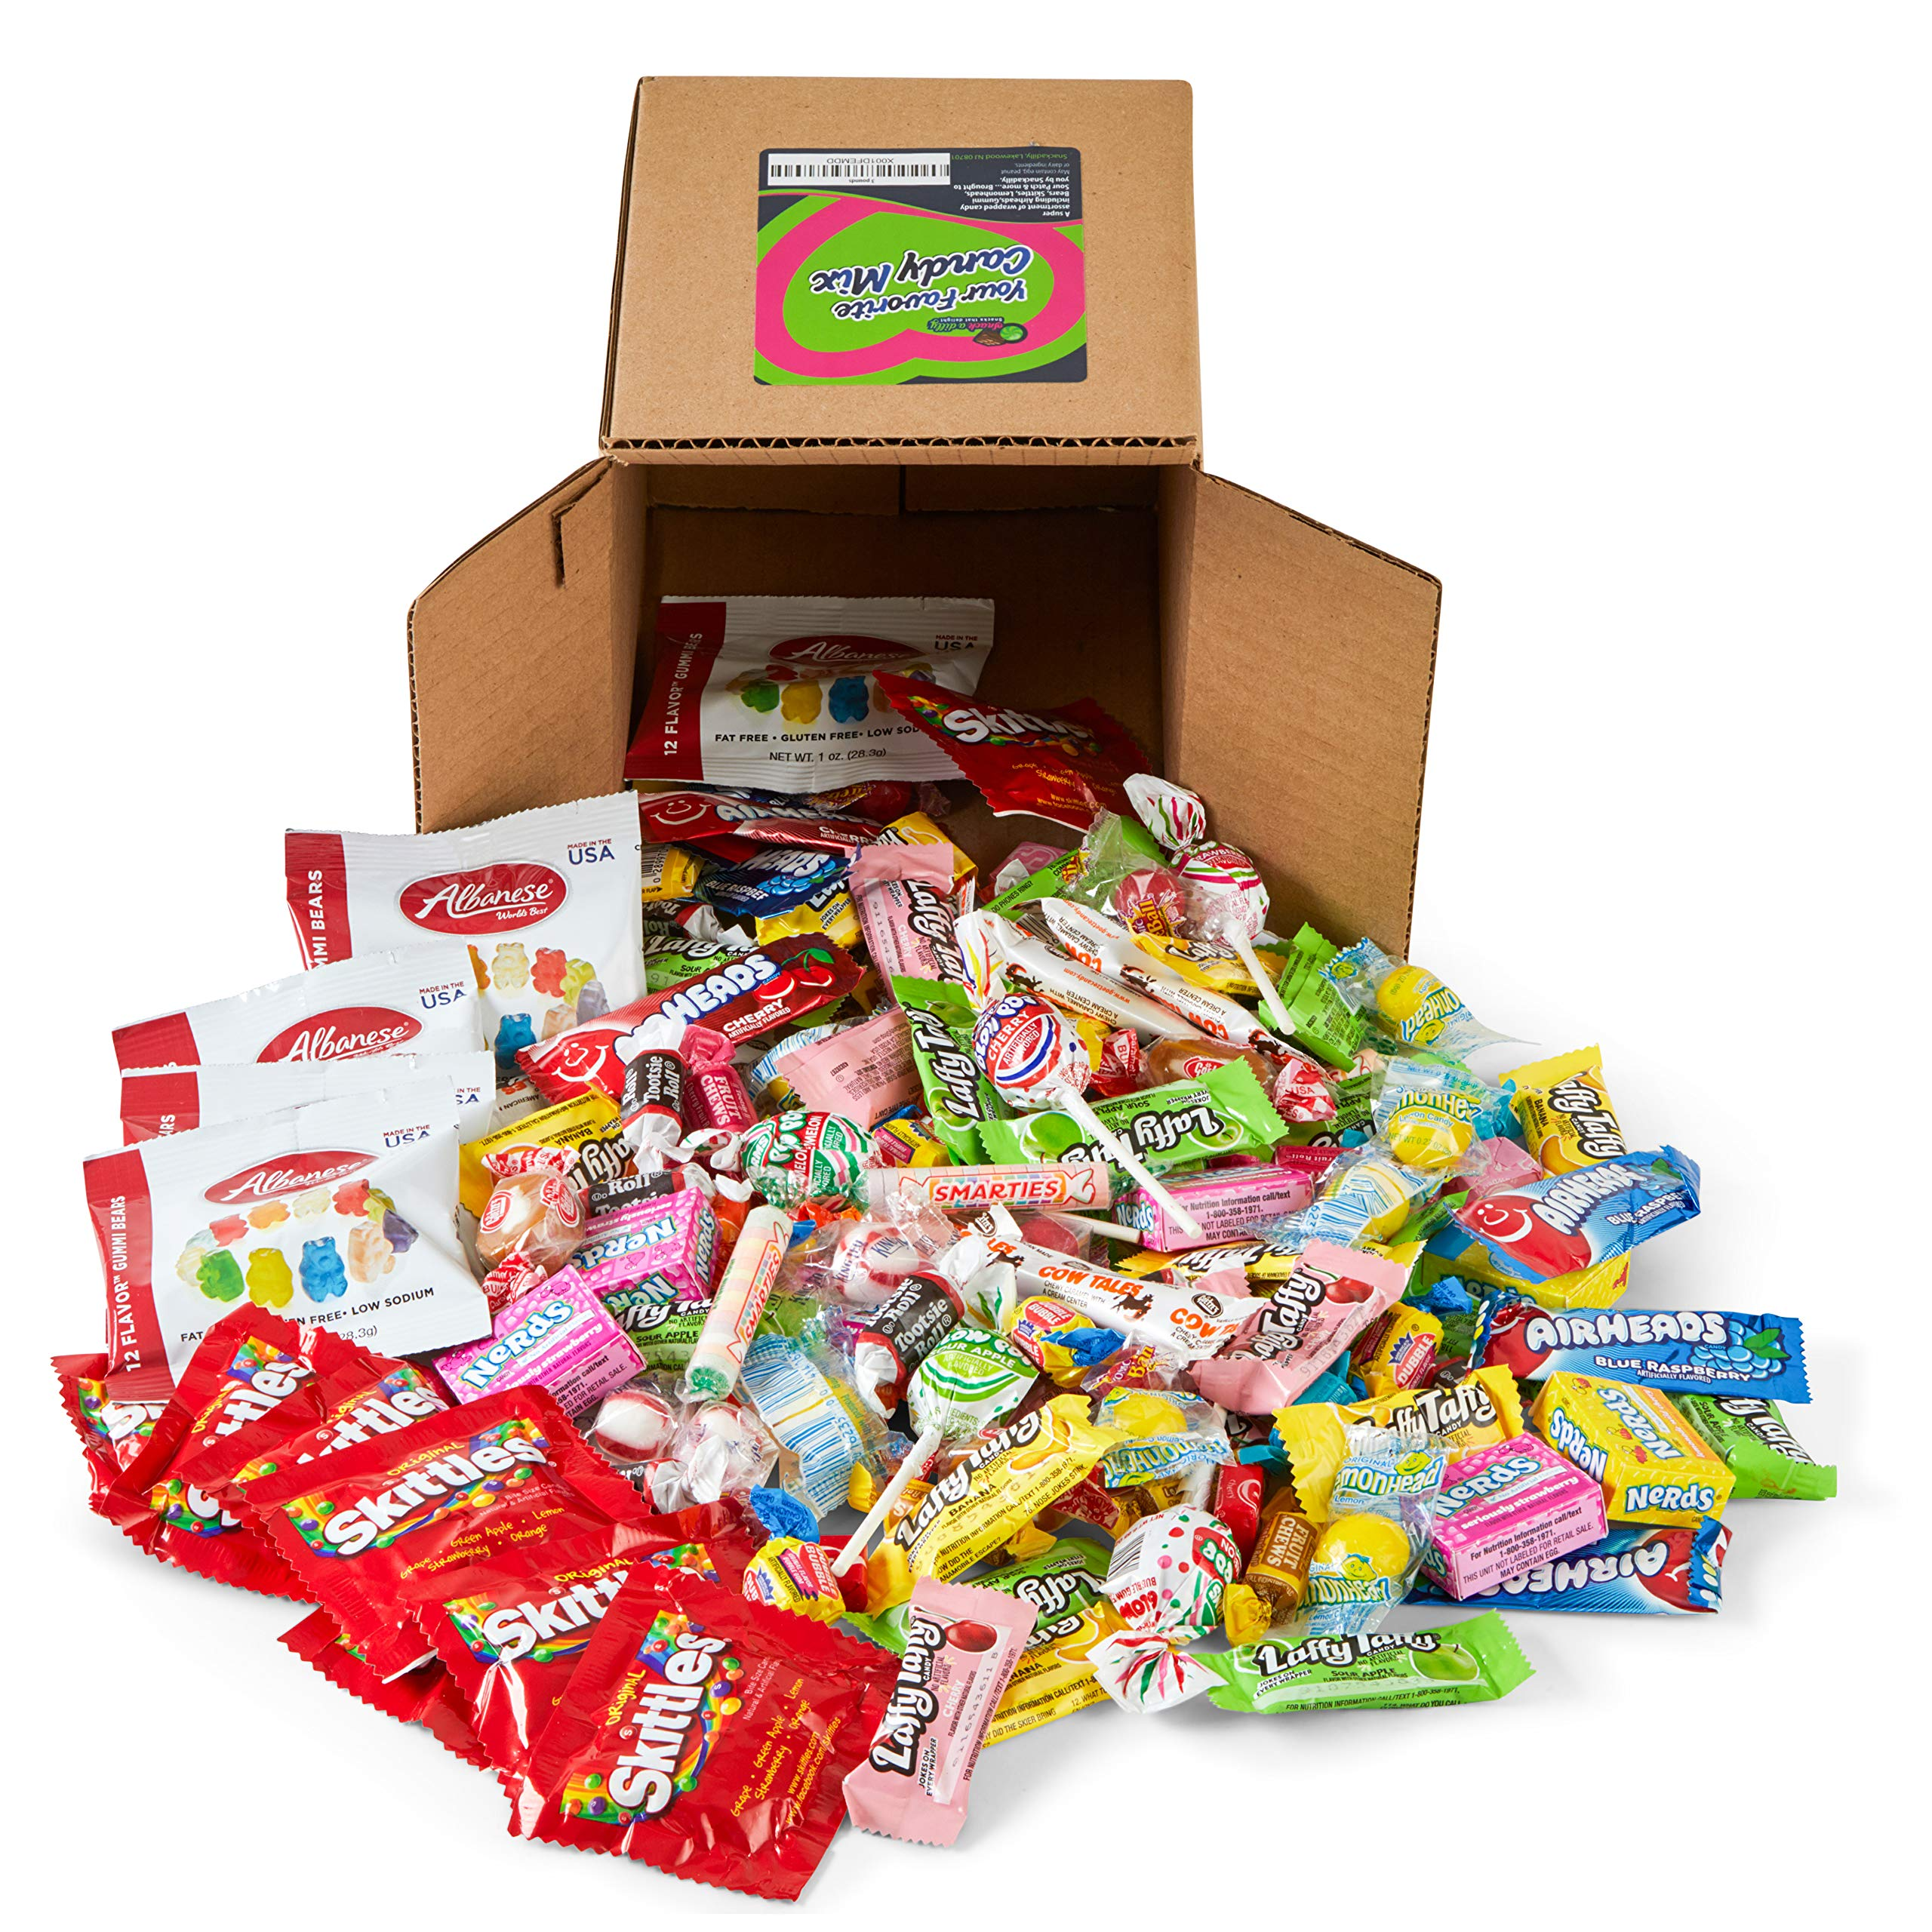 Your Favorite Party Mix Of Brand Name Candy! - 7.5 Pound Bulk Box of Gummy Bears, Airheads, Laffy Taffy, Blow Pops, Tootsie Rolls, Skittles, Lemon Heads, Jaw Buster's & Much More By Snackadilly by Snackadilly